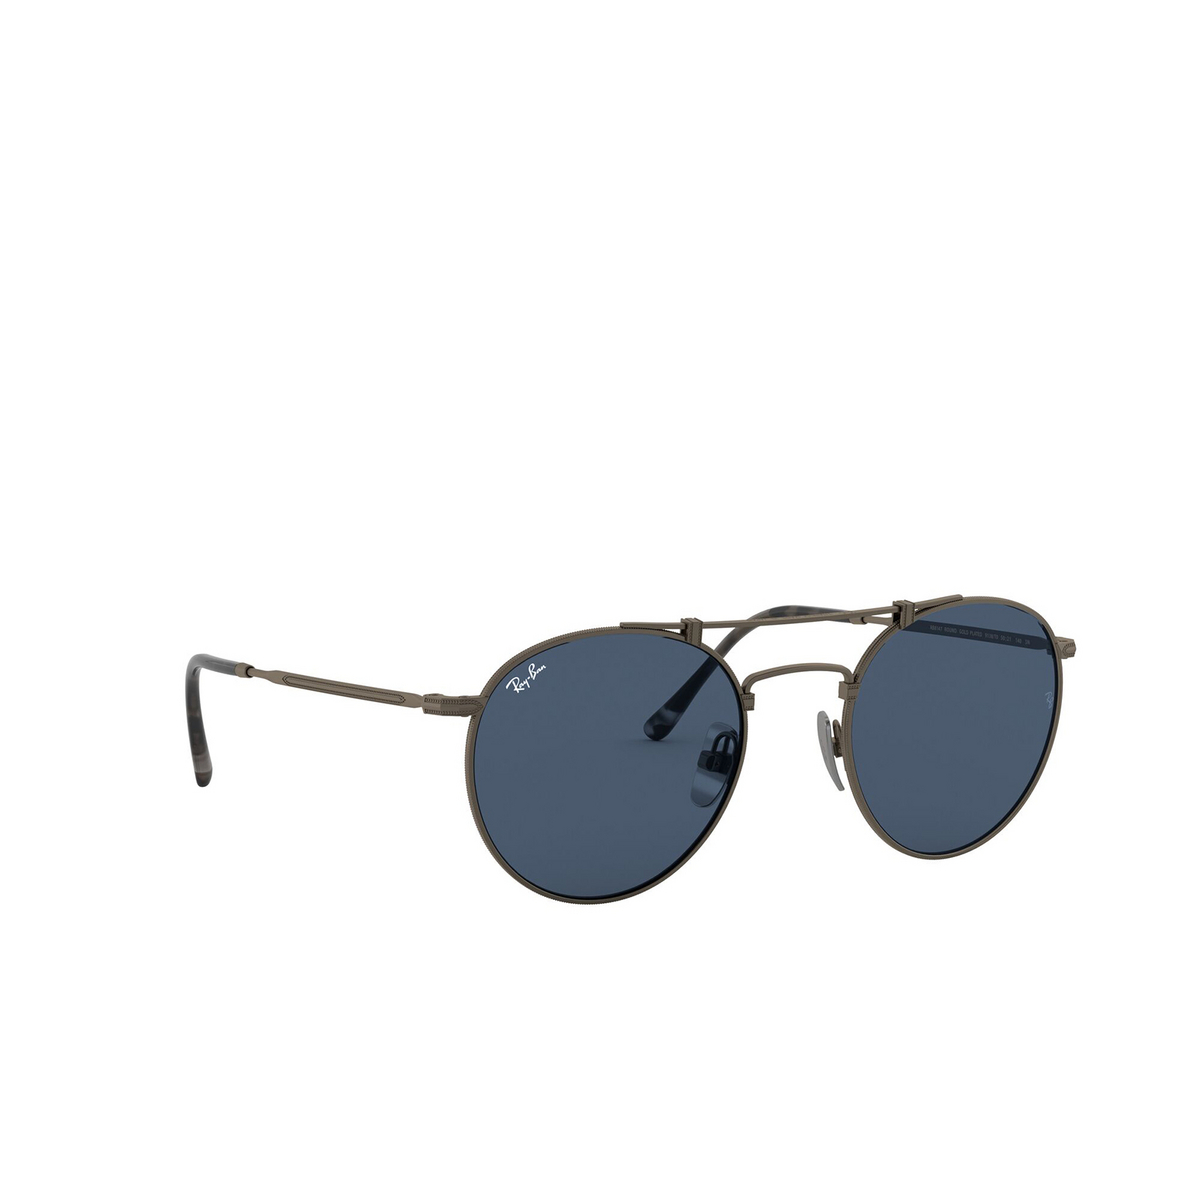 Ray-Ban® Round Sunglasses: Titanium RB8147 color Demi Gloss Pewter 9138T0 - three-quarters view.